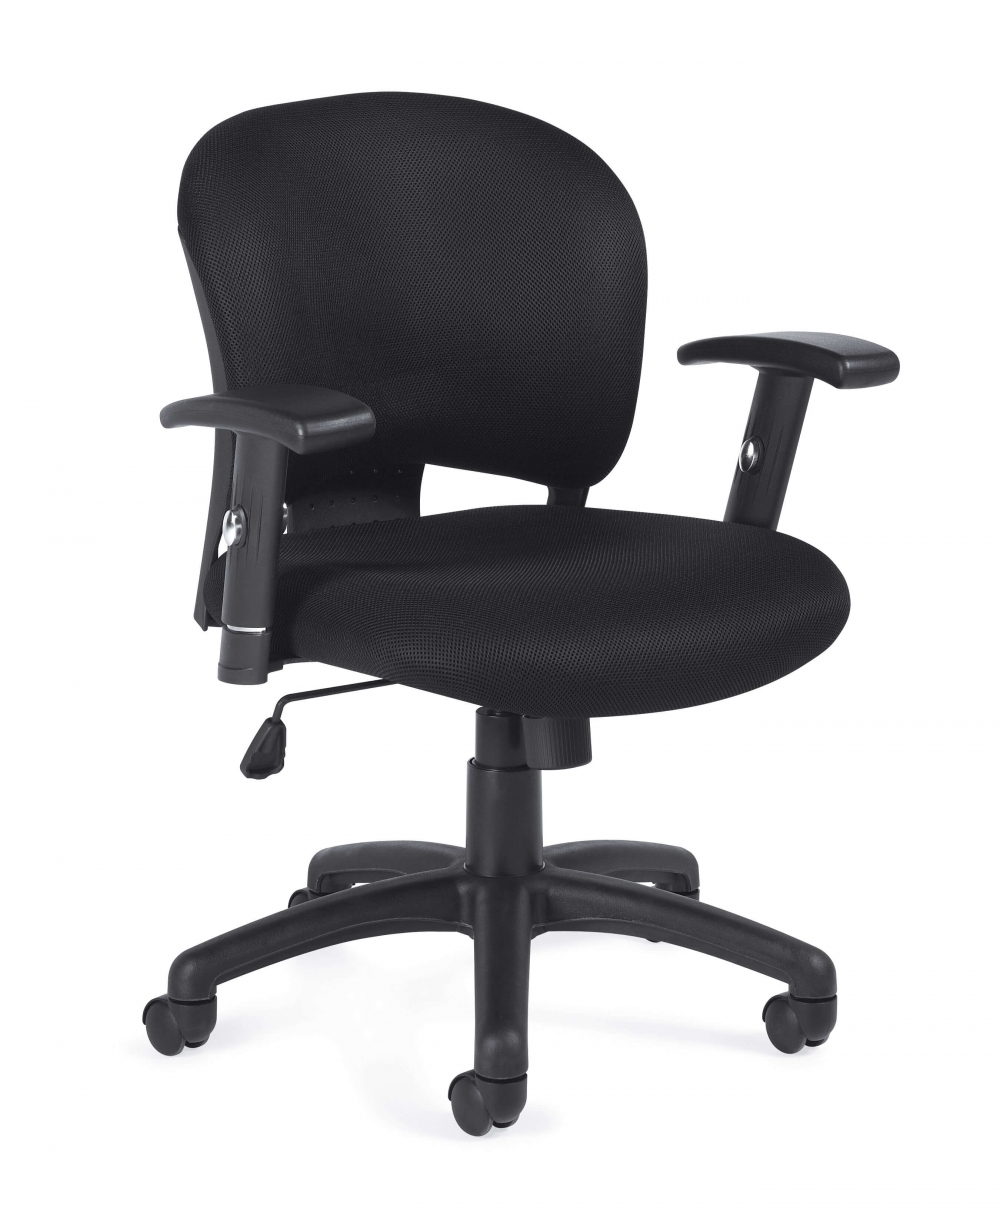 wholesale office chairs winni upholstered office chairs 29262